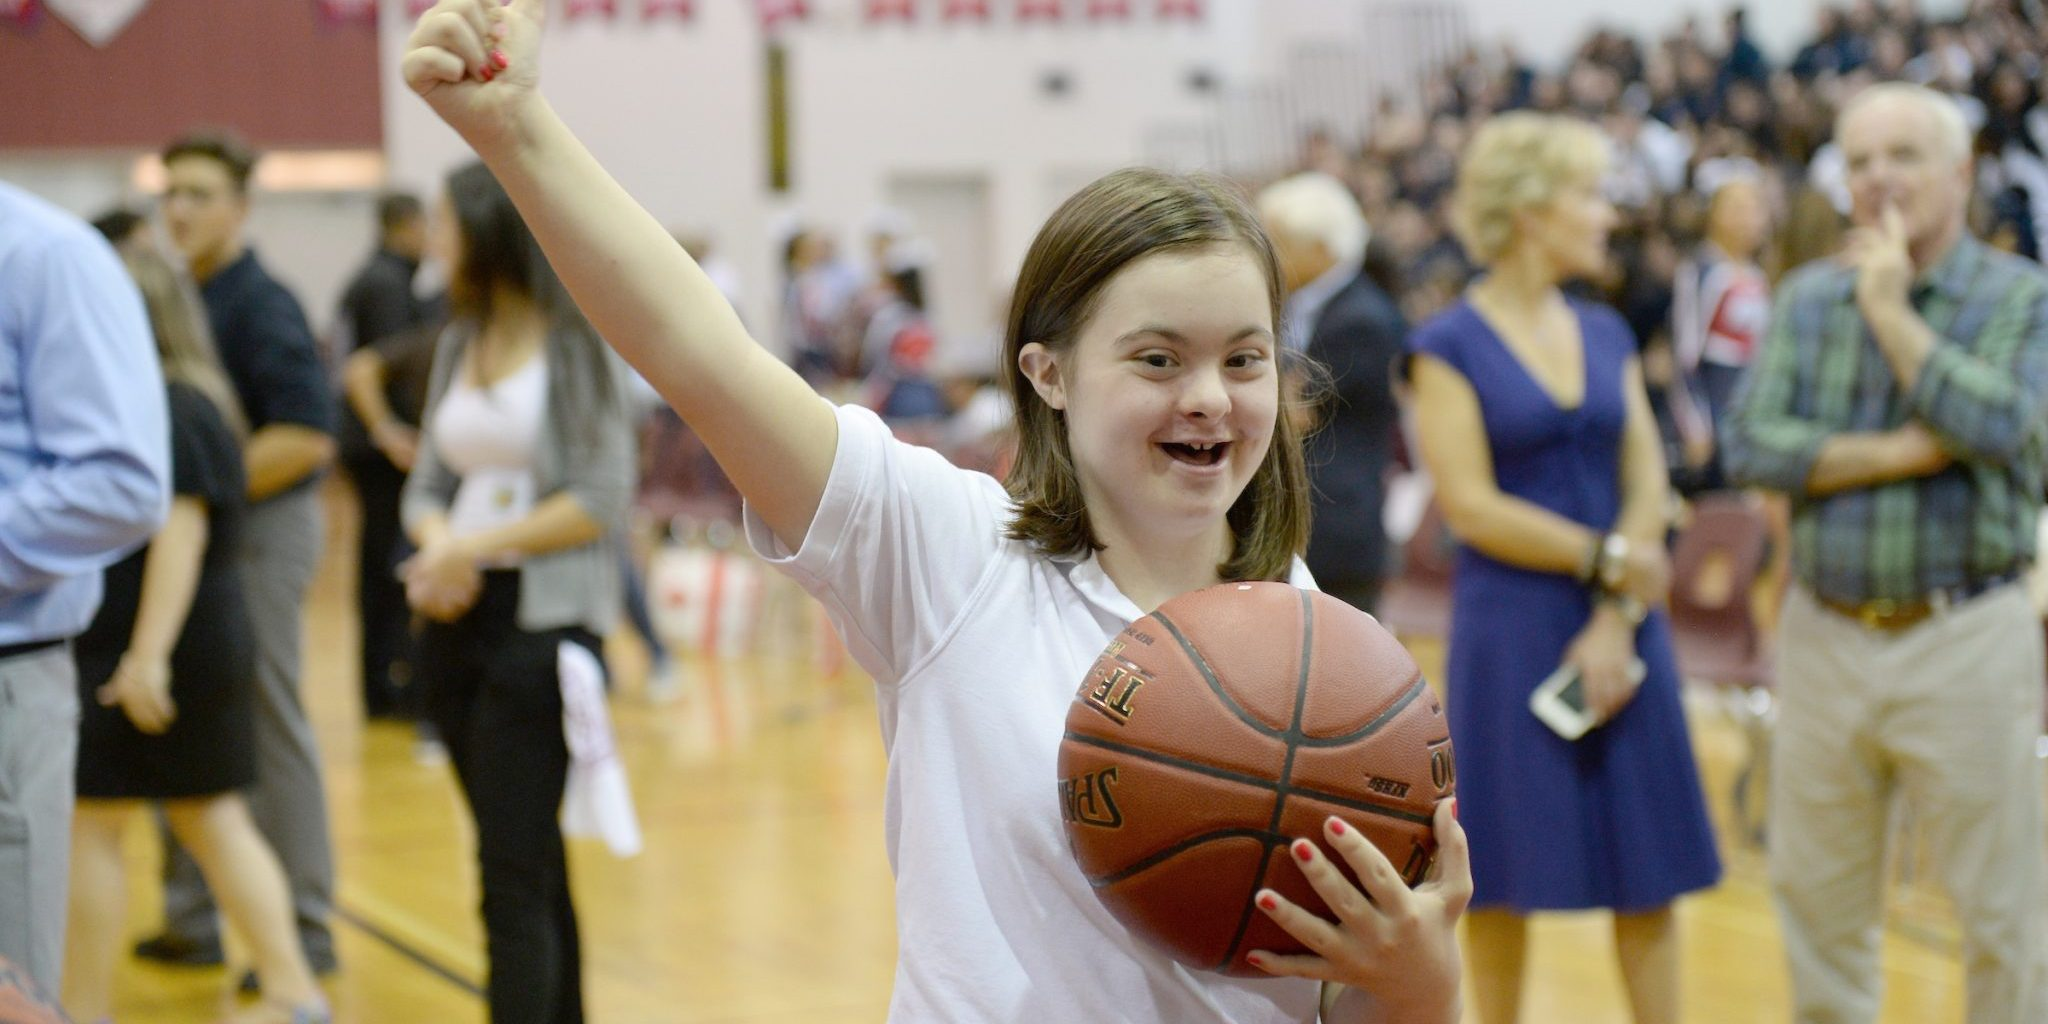 Best Buddies Hooping tsandler 0318